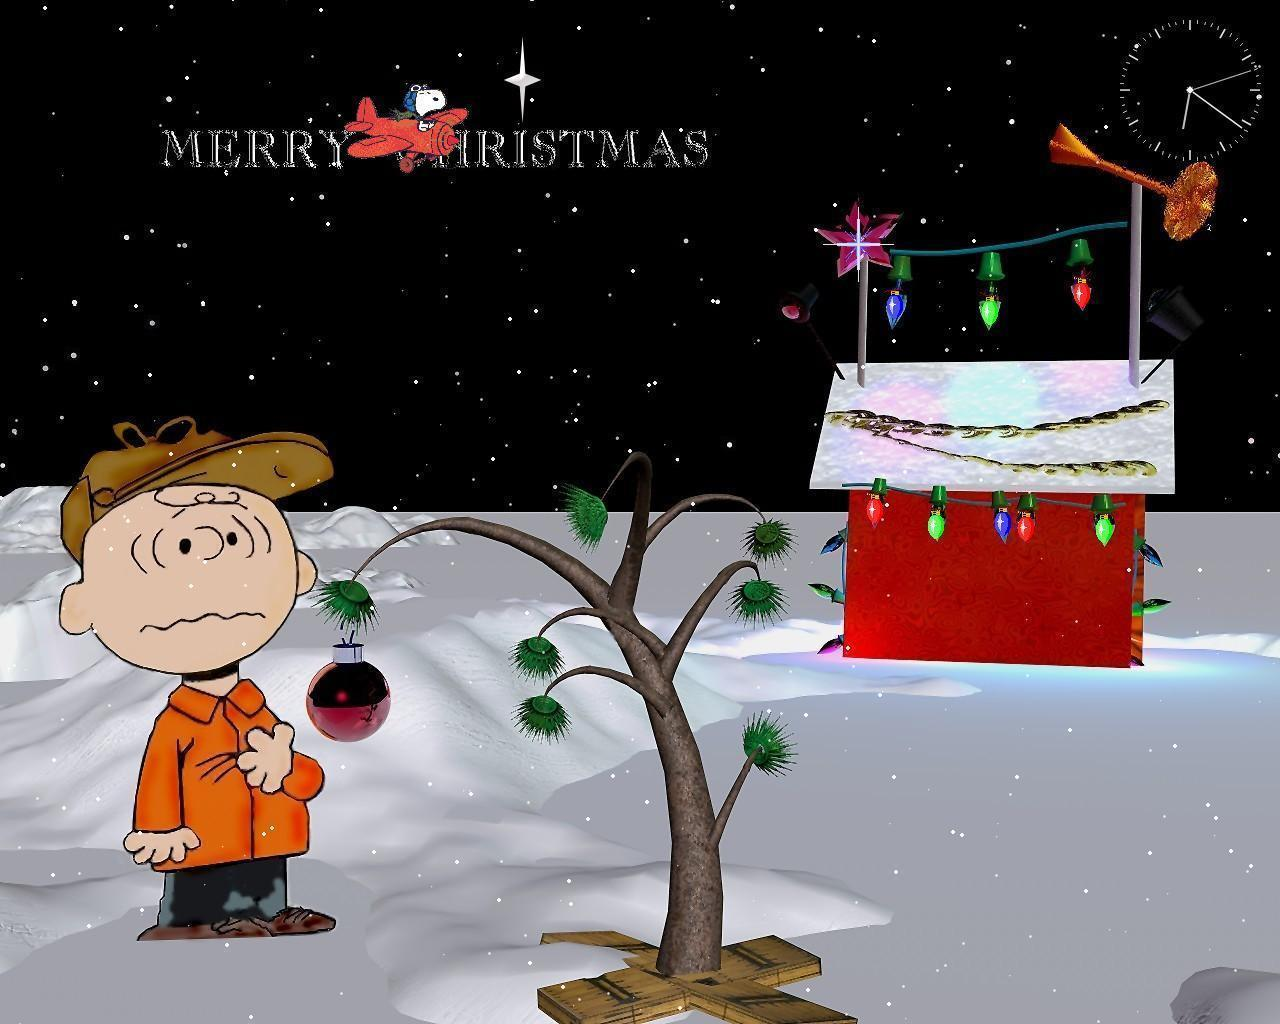 Free Download Charlie Brown Wallpapers 1280x1024 For Your